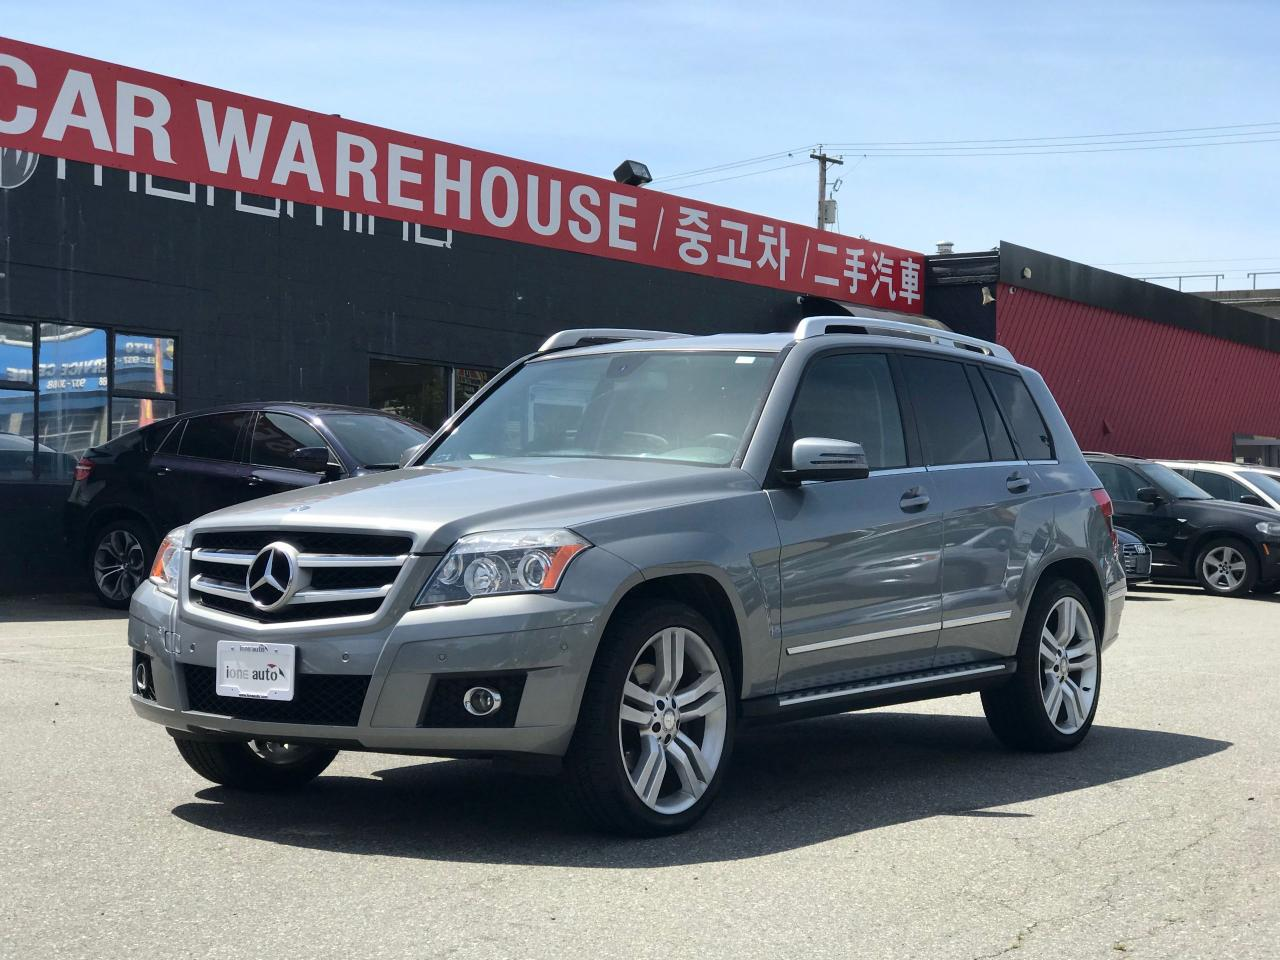 Used 2010 Mercedes Benz Glk Class Glk 350 For Sale In Coquitlam